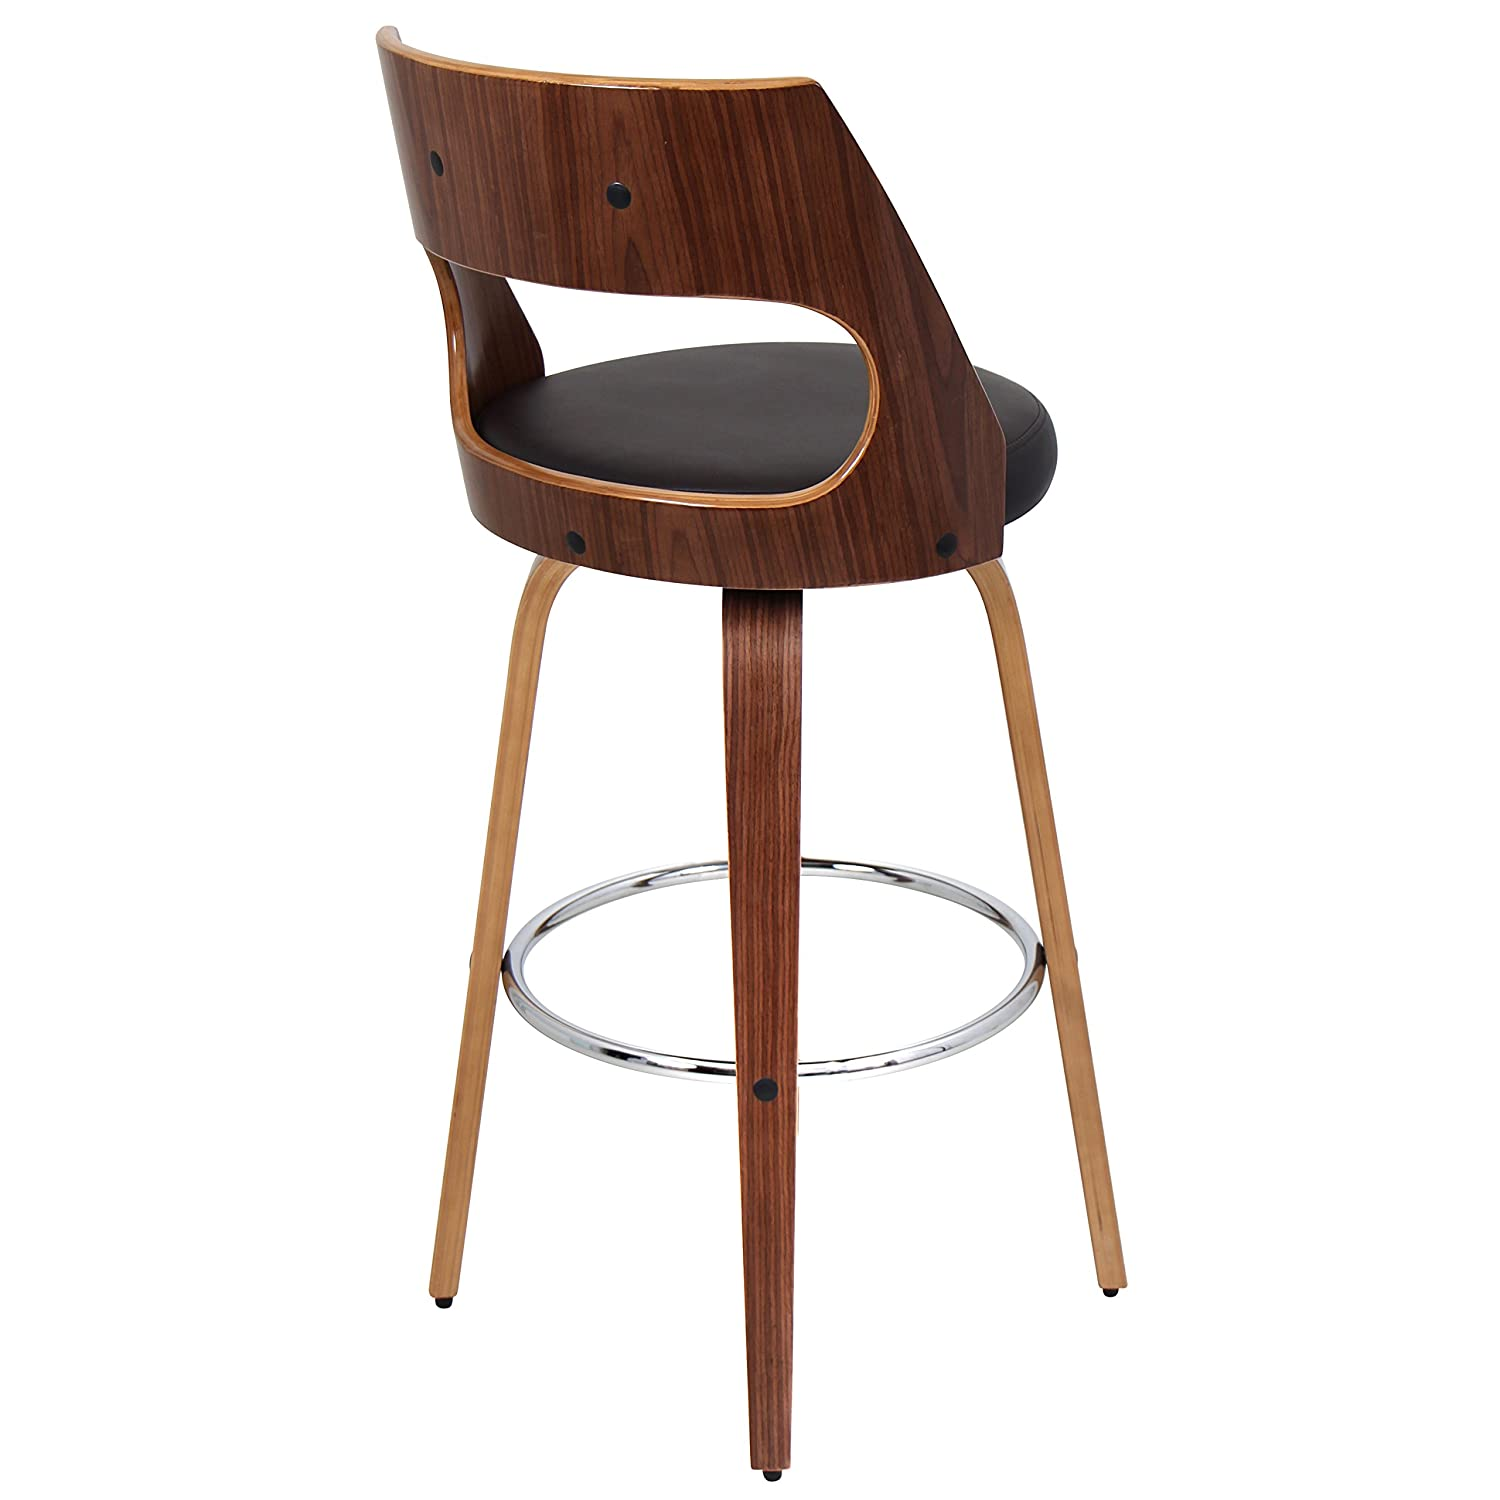 Prime Woybr Pu Leather Bent Wood Cecina Barstool 41 X 17 X 18 5 Walnut Brown Caraccident5 Cool Chair Designs And Ideas Caraccident5Info